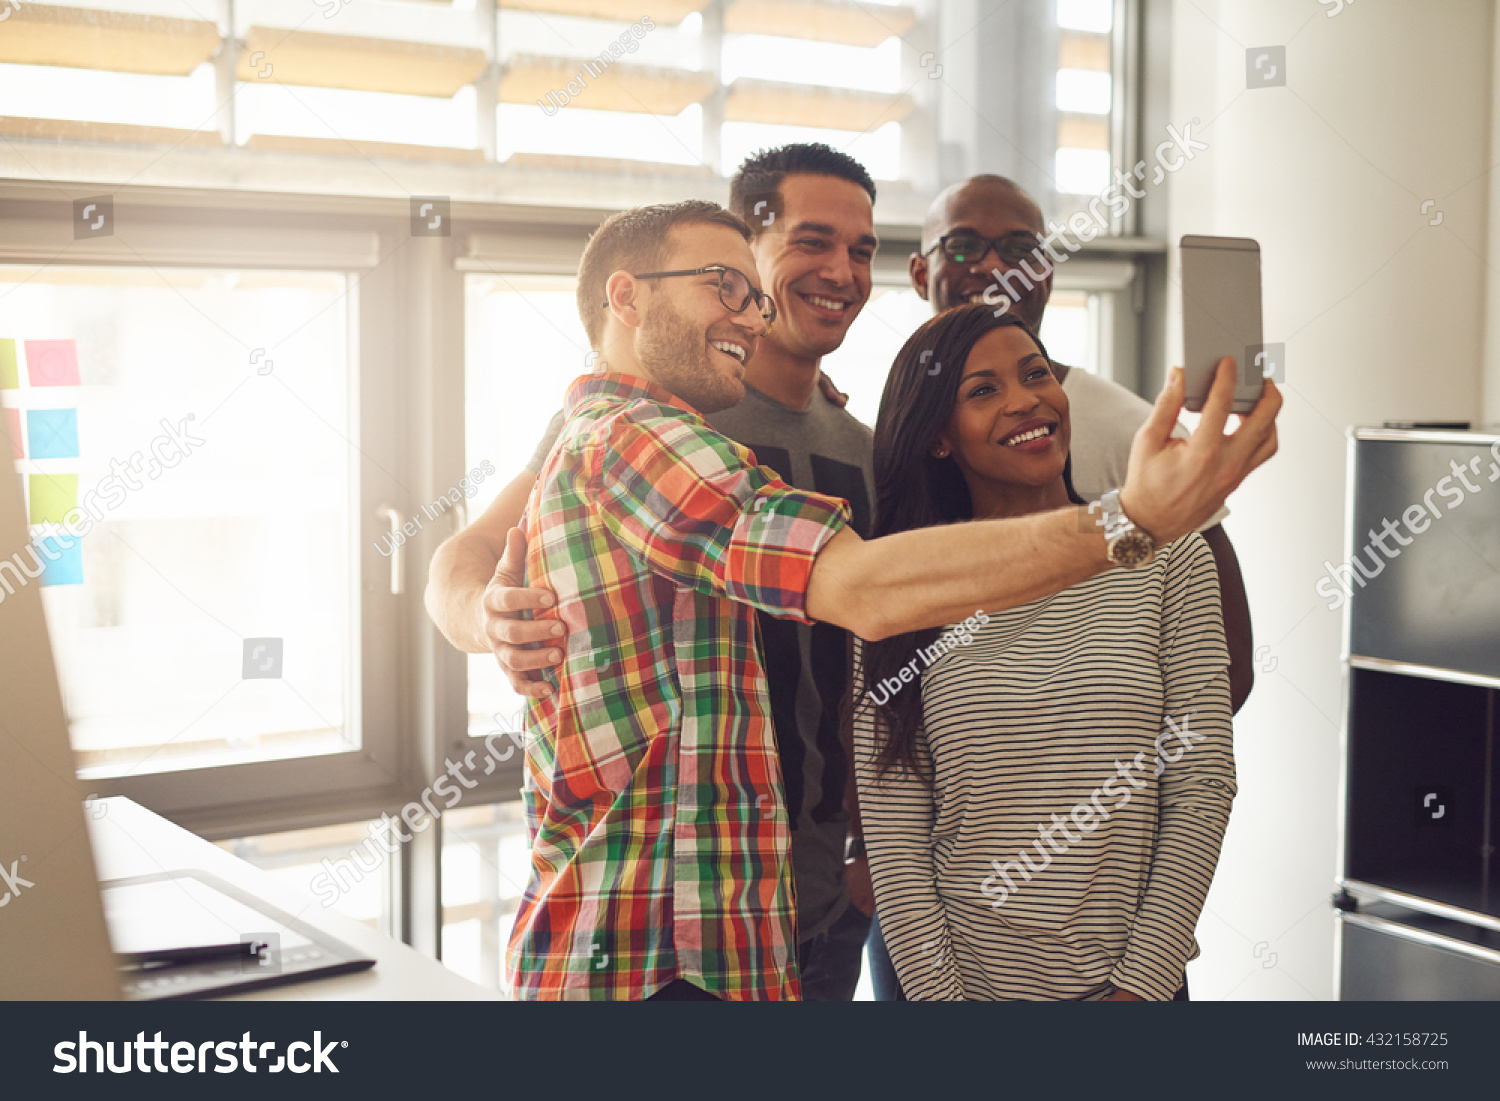 Group Four Diverse Cheerful Coworkers Taking Stock Photo ...  Group Four Dive...